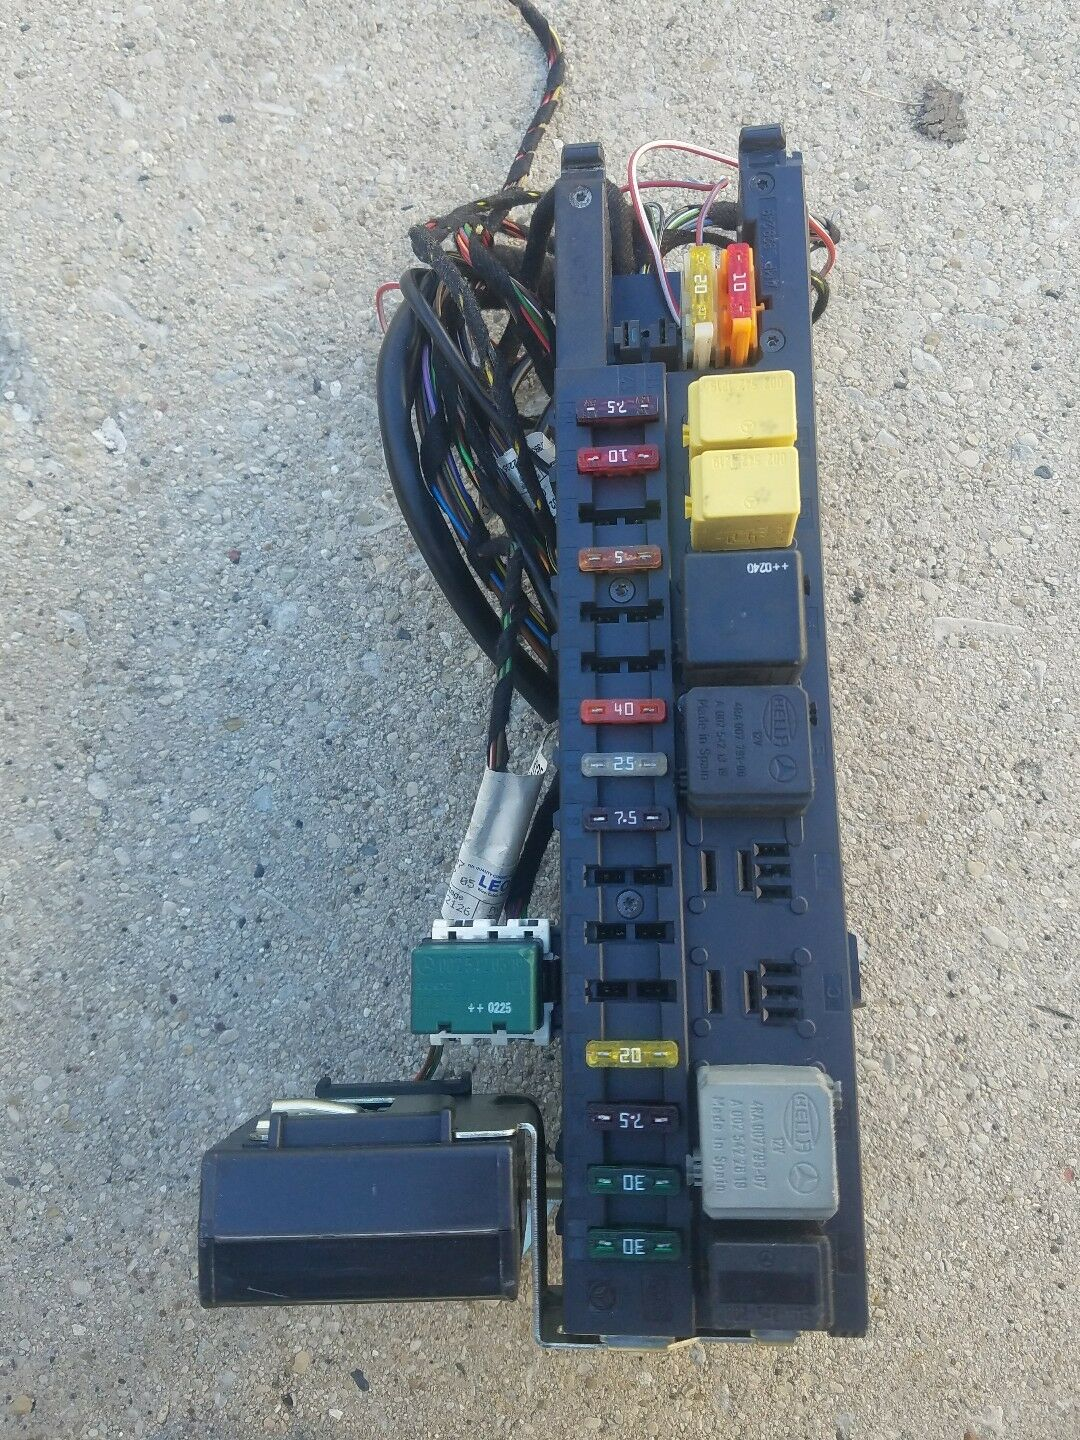 hight resolution of 01 02 09 w209 w203 c240 sam bcm signal acquisition module fuse box 209 545 01 01 for sale